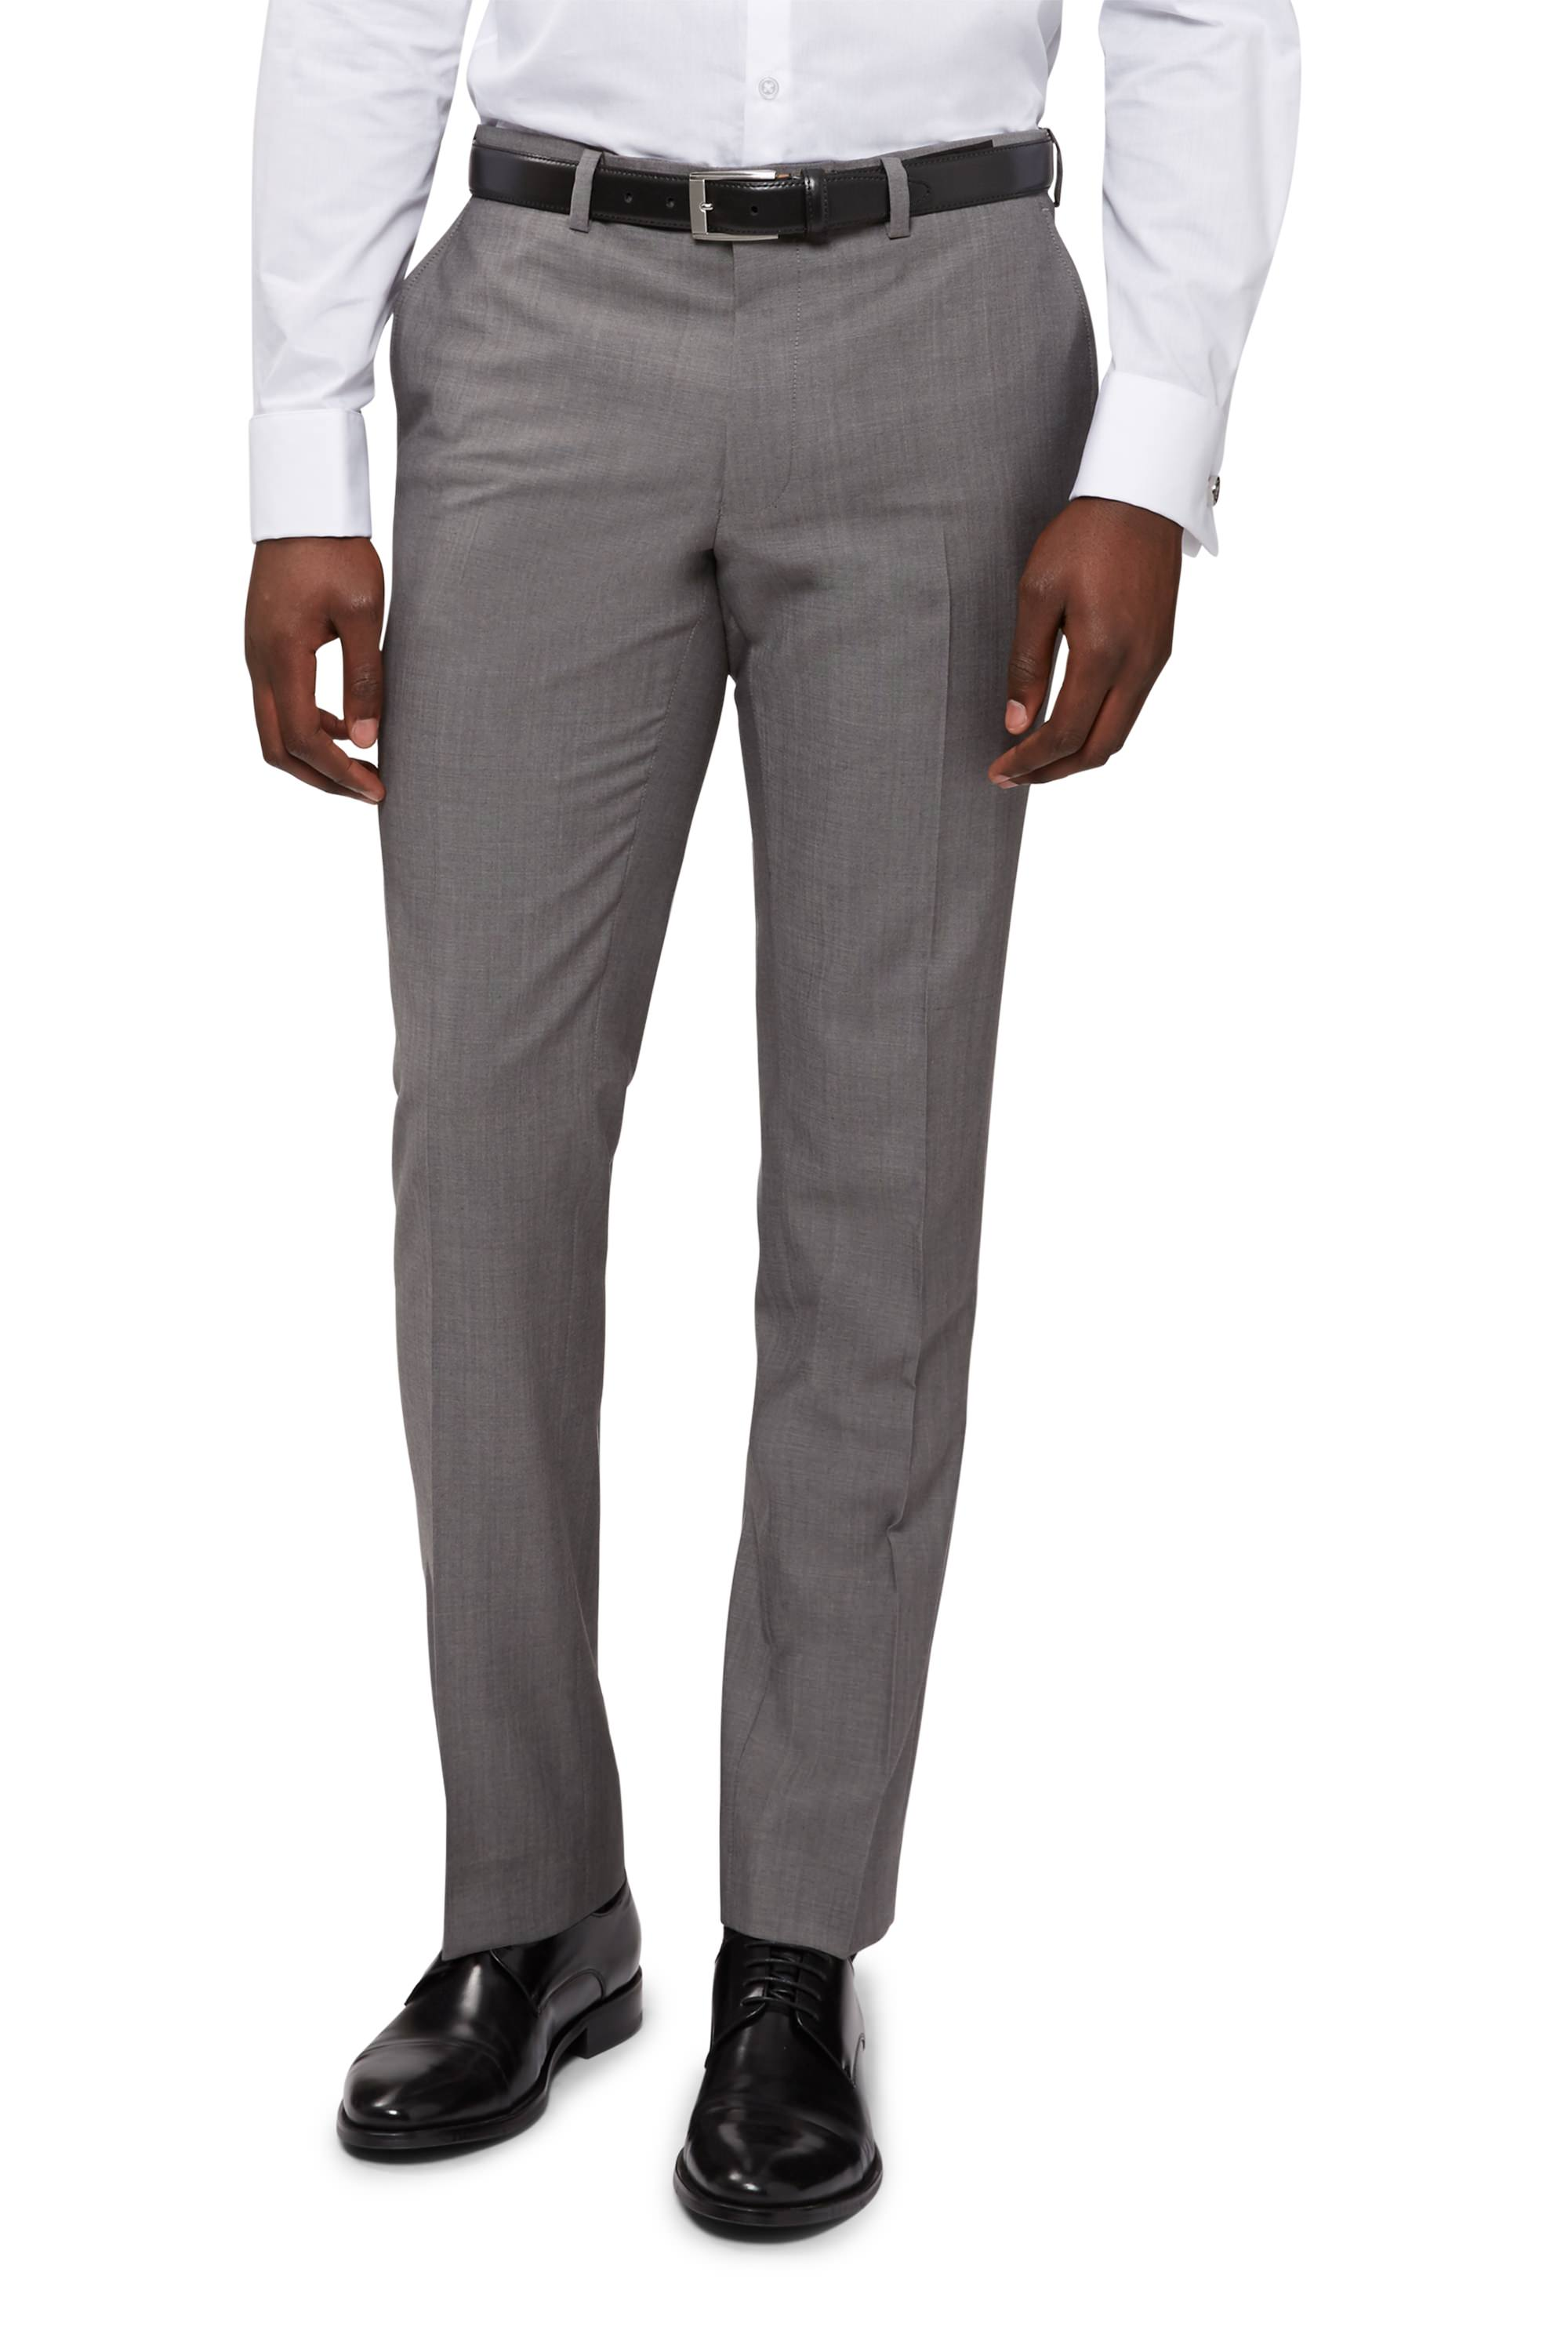 Shop for men's grey formal trousers at tanzaniasafarisorvicos.ga Next day delivery and free returns available. s of products online. Buy men's grey formal trousers now! Light Grey Slim Fit Trousers With Stretch. £ Light Grey Skinny Fit Plain Front Trousers. £ Light Grey Regular Fit Wool Blend Textured Trousers.